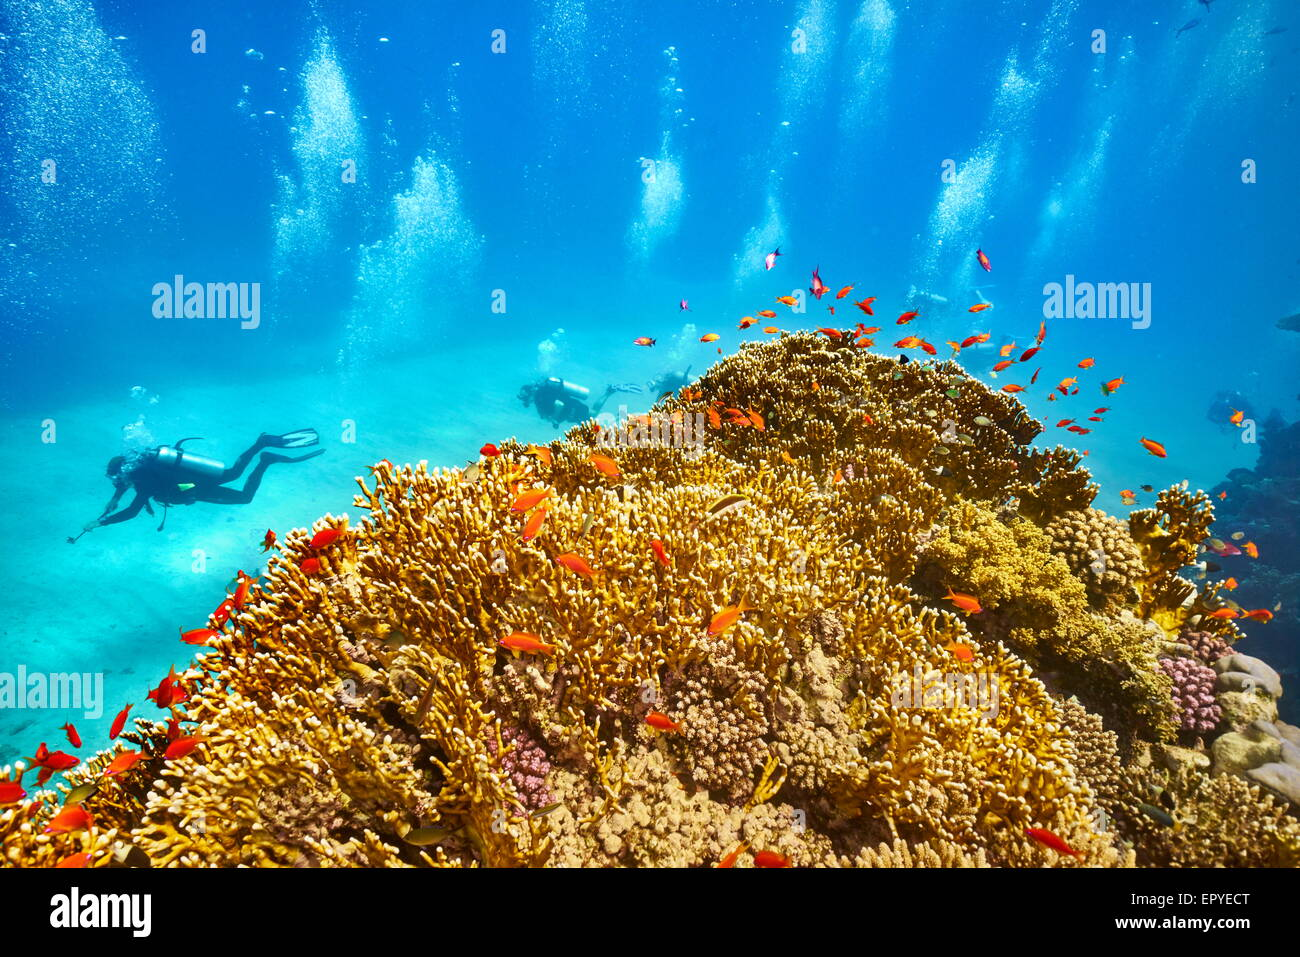 Marsa Alam, Red Sea - underwater view at scuba divers and the reef - Stock Image